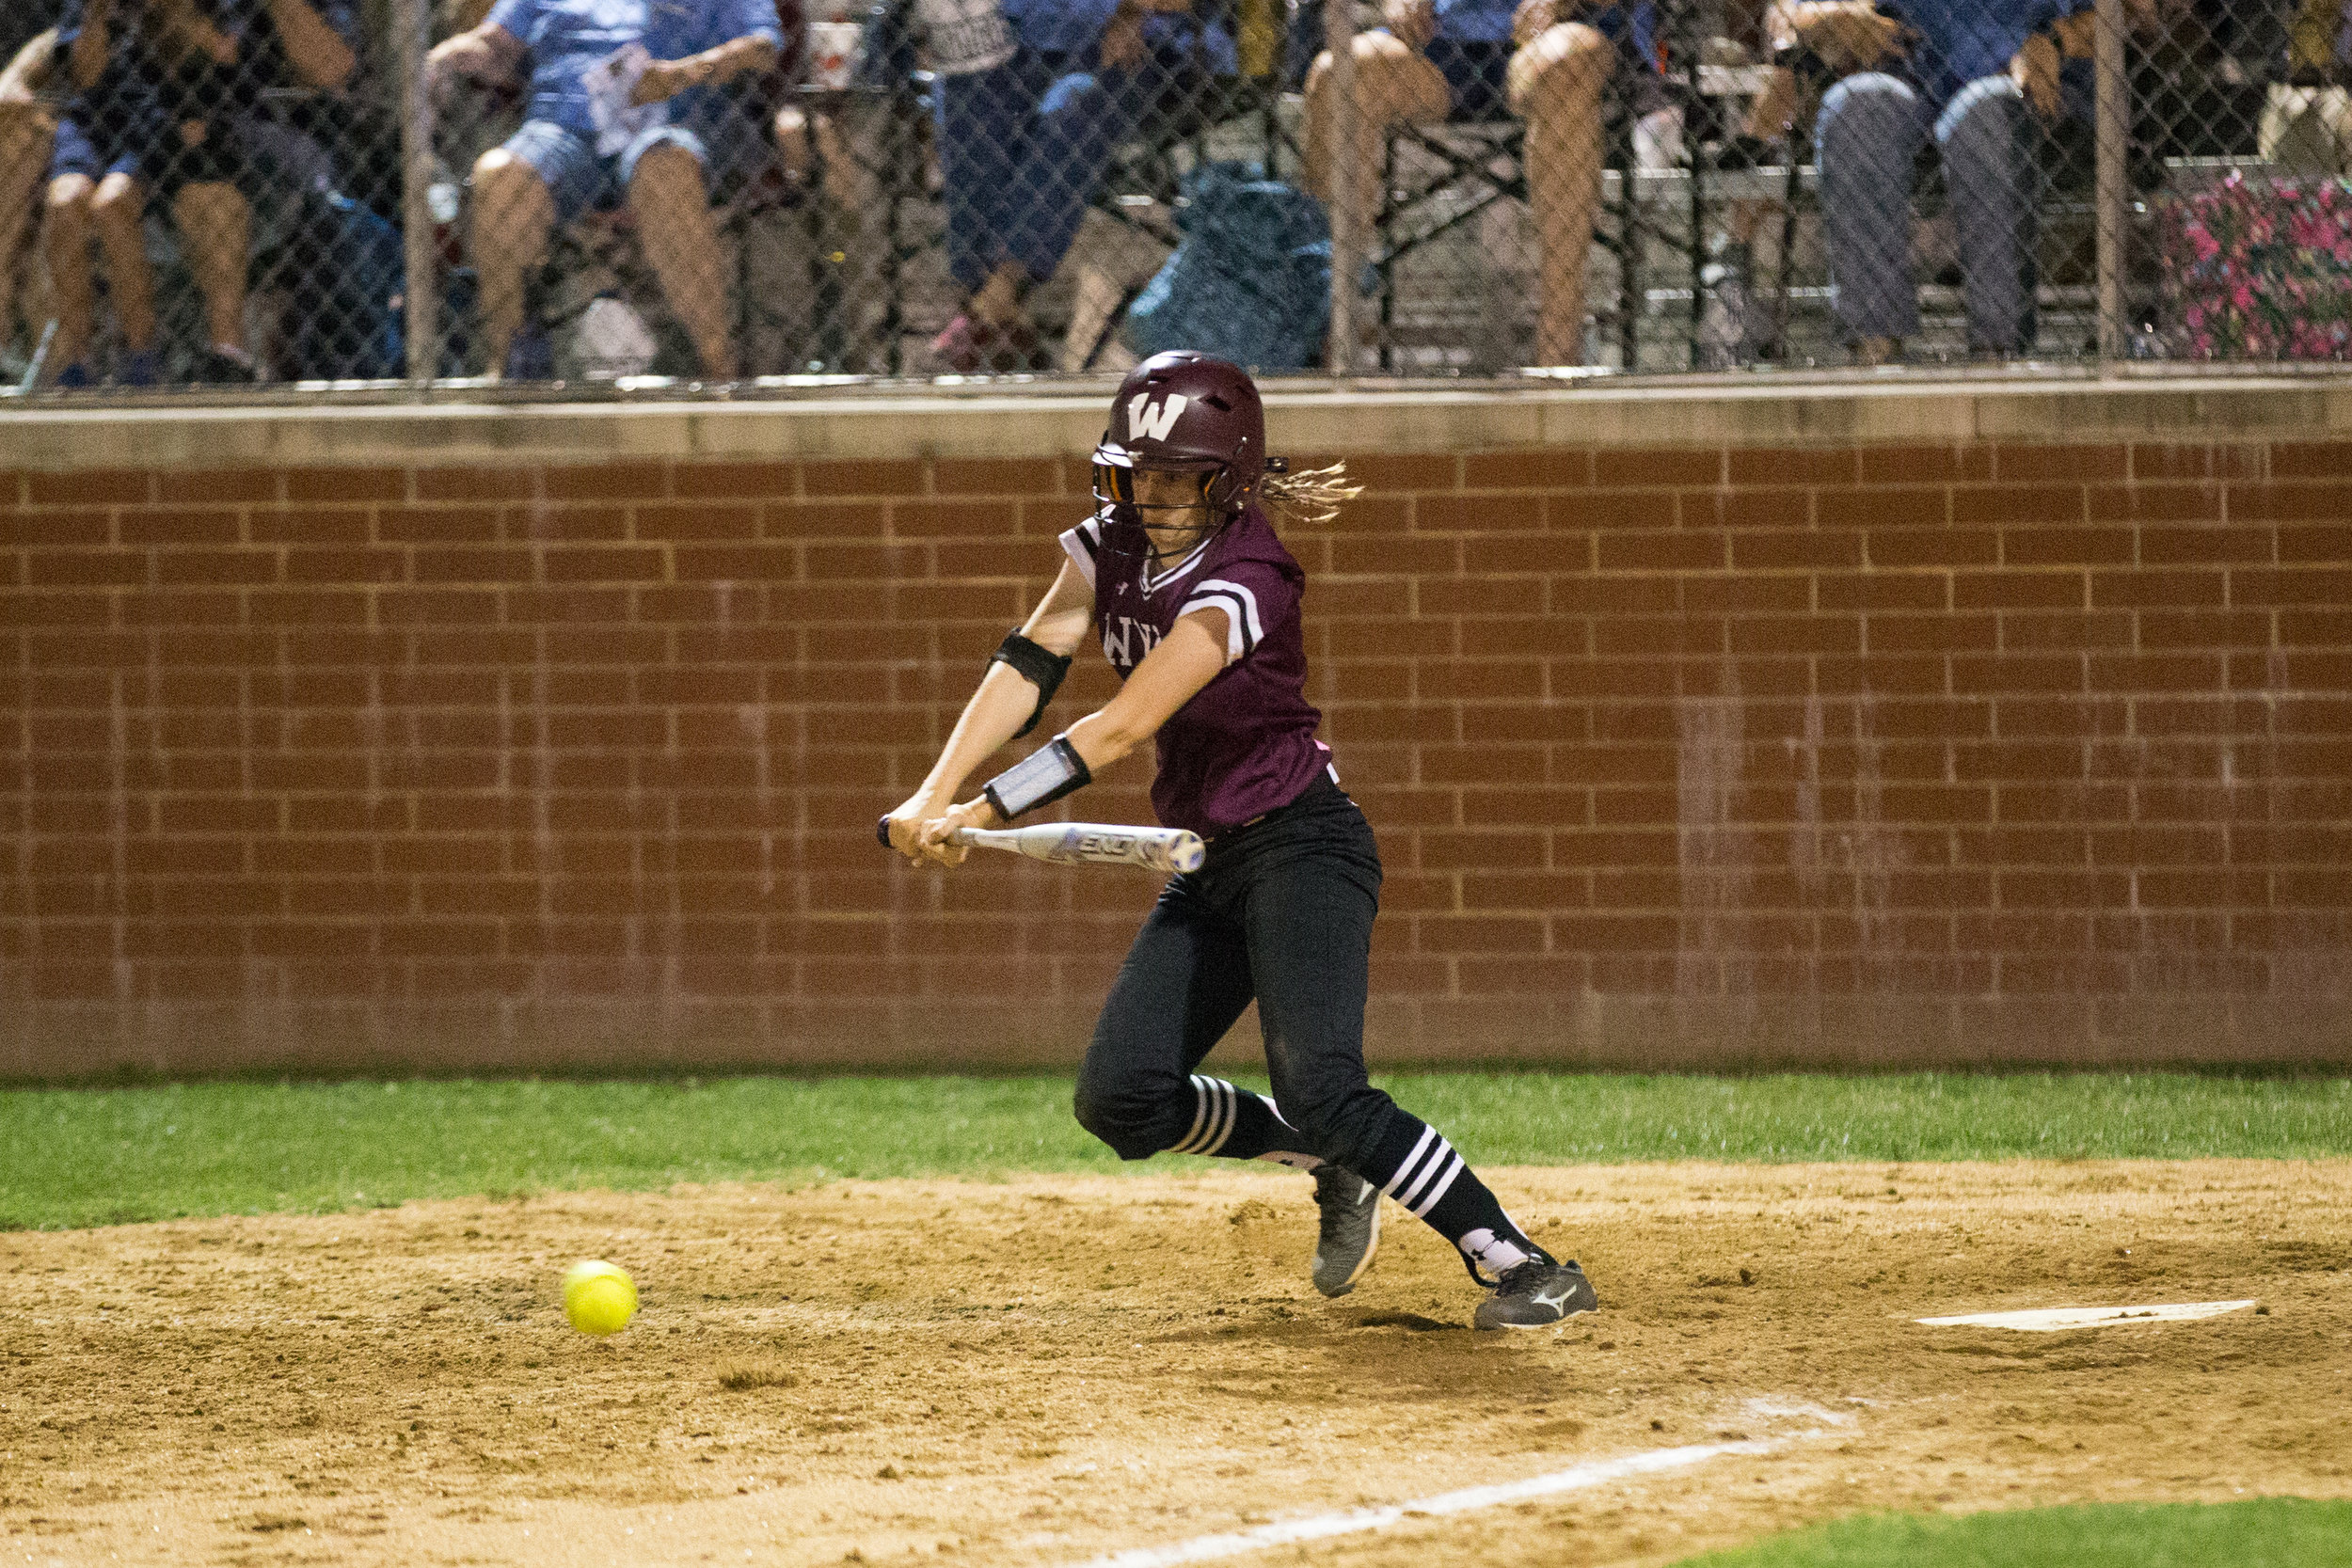 5_18 Wylie Softball-187.jpg